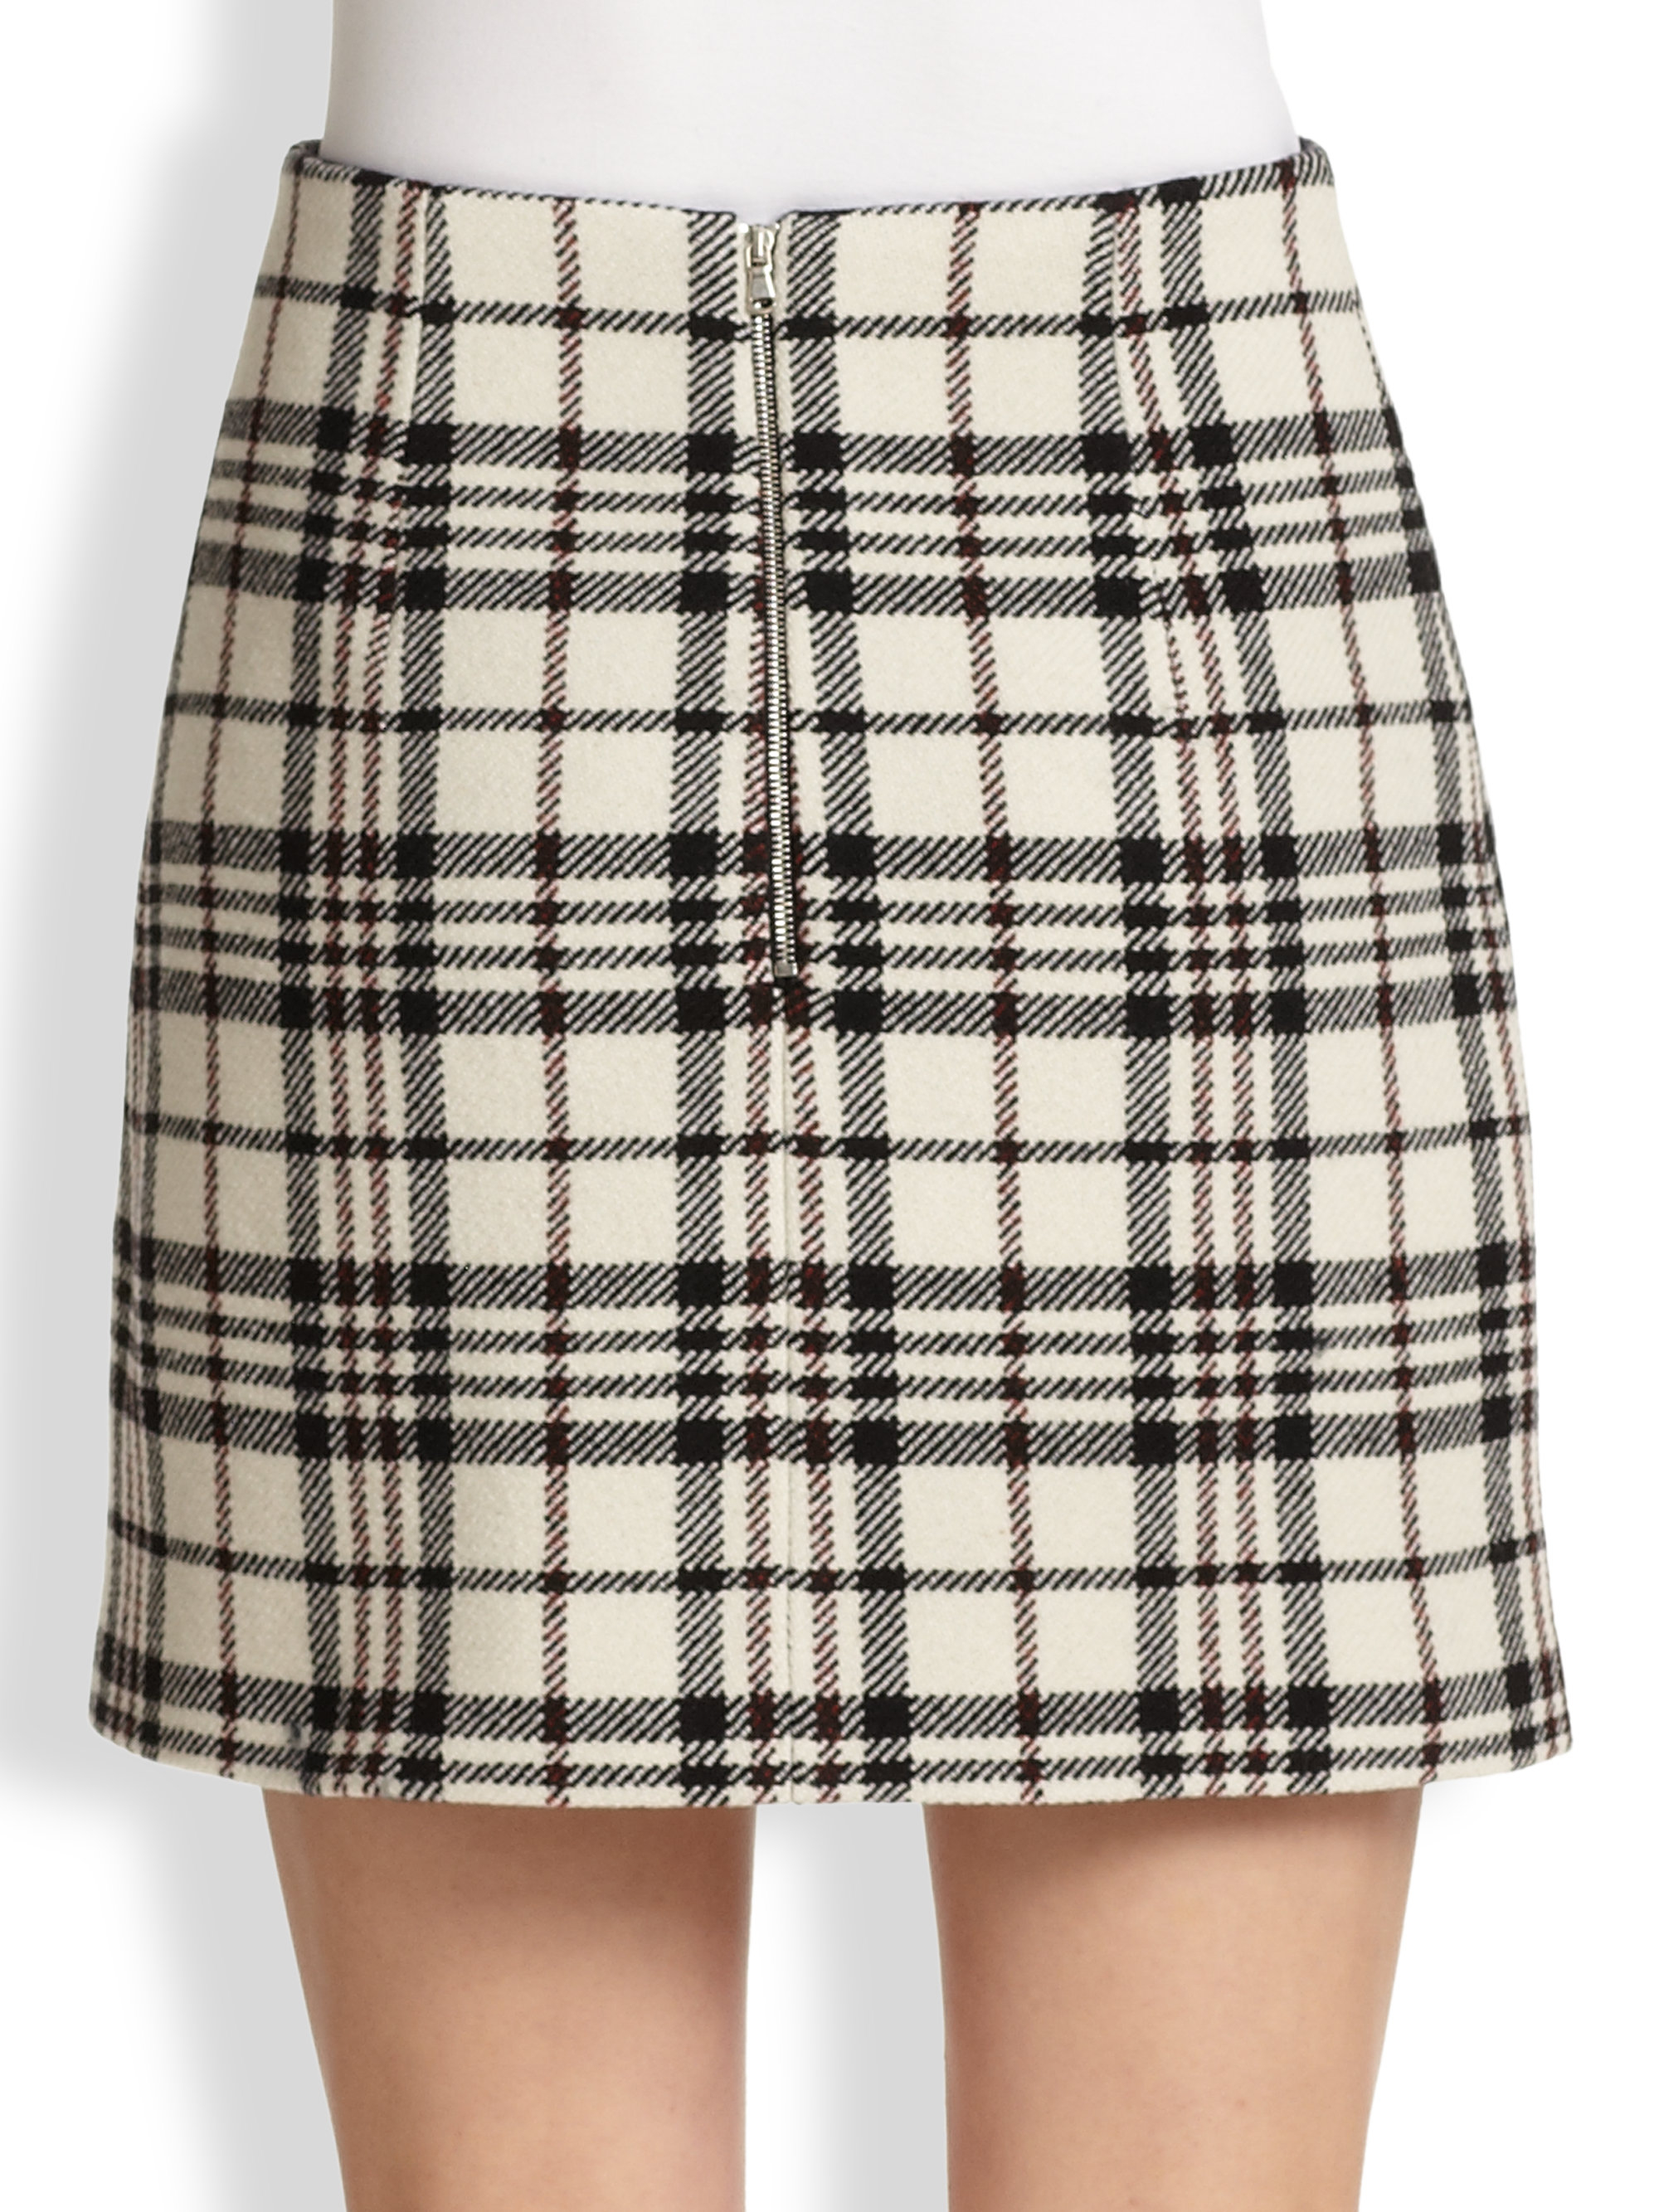 bfa94f919c3 Wholesale cheap schoolgirl plaid skirt brand -summer sexy red plaid pleated  mini skirt for women